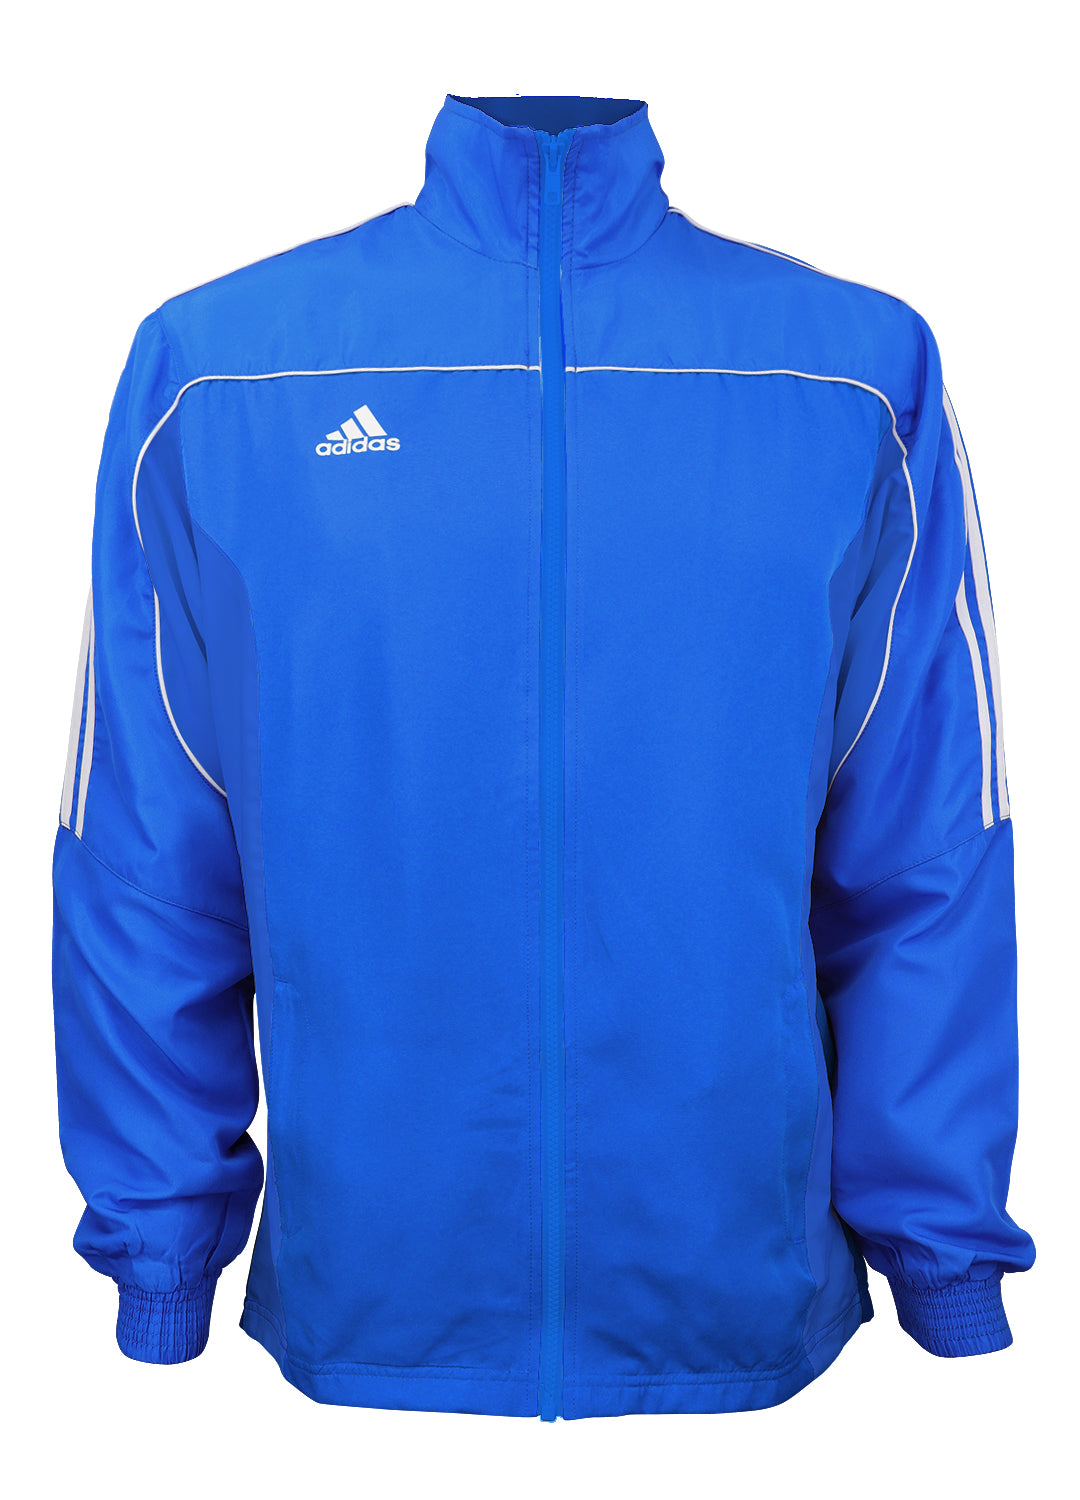 adidas Blue with White Stripes Windbreaker Style Team Jacket Front View